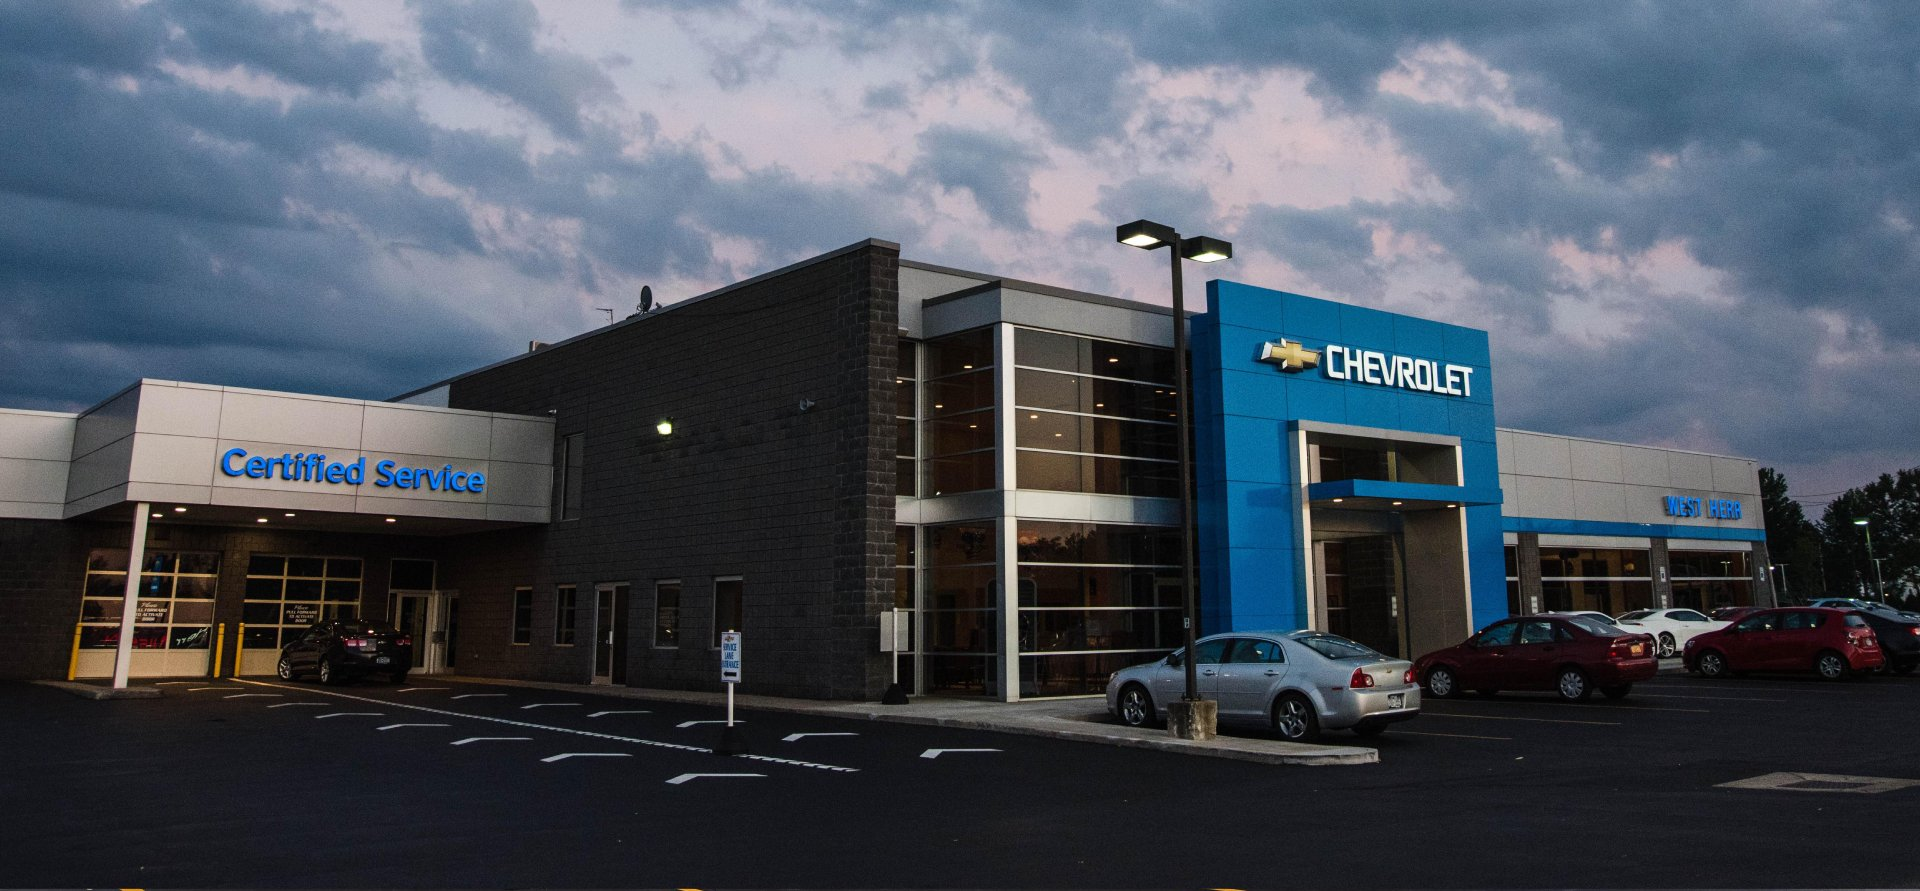 West Herr Chevrolet orchard Park, dealership exterior